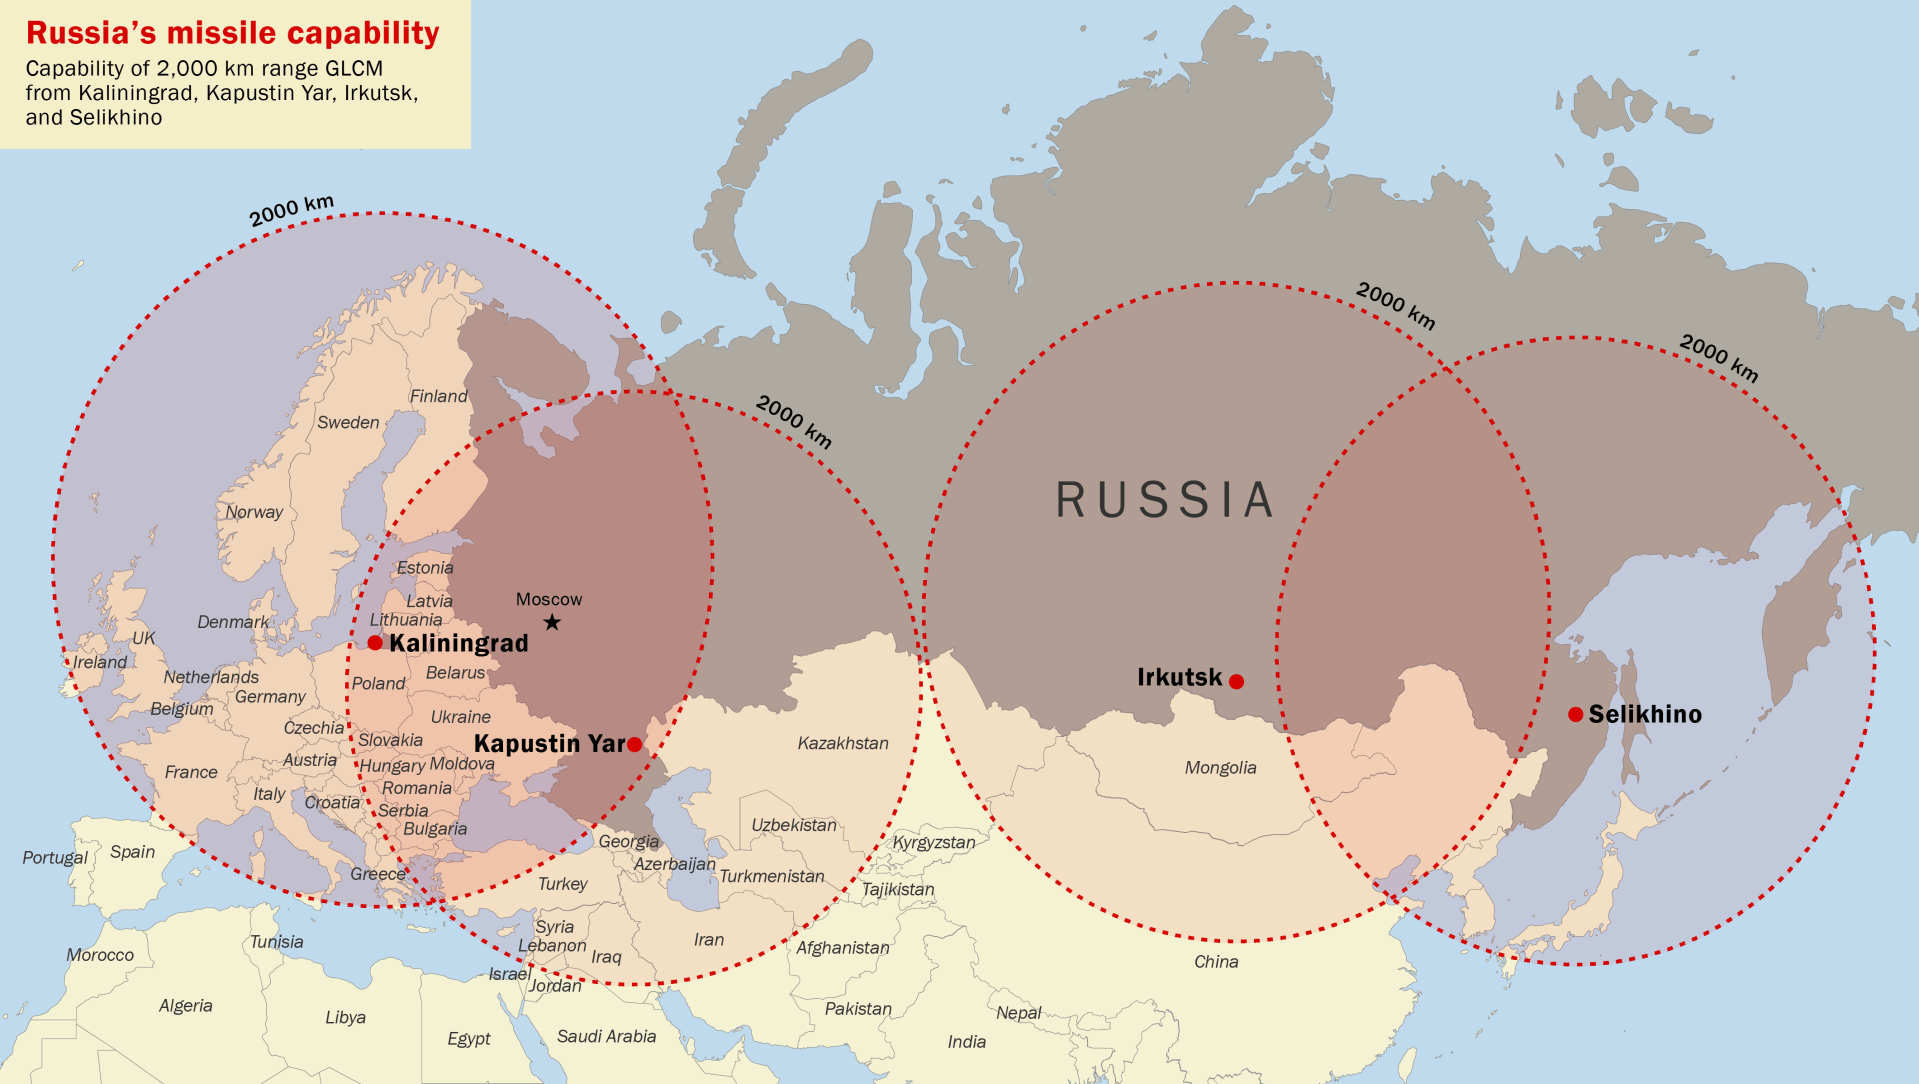 Map showing missile ranges for Russian missiles.